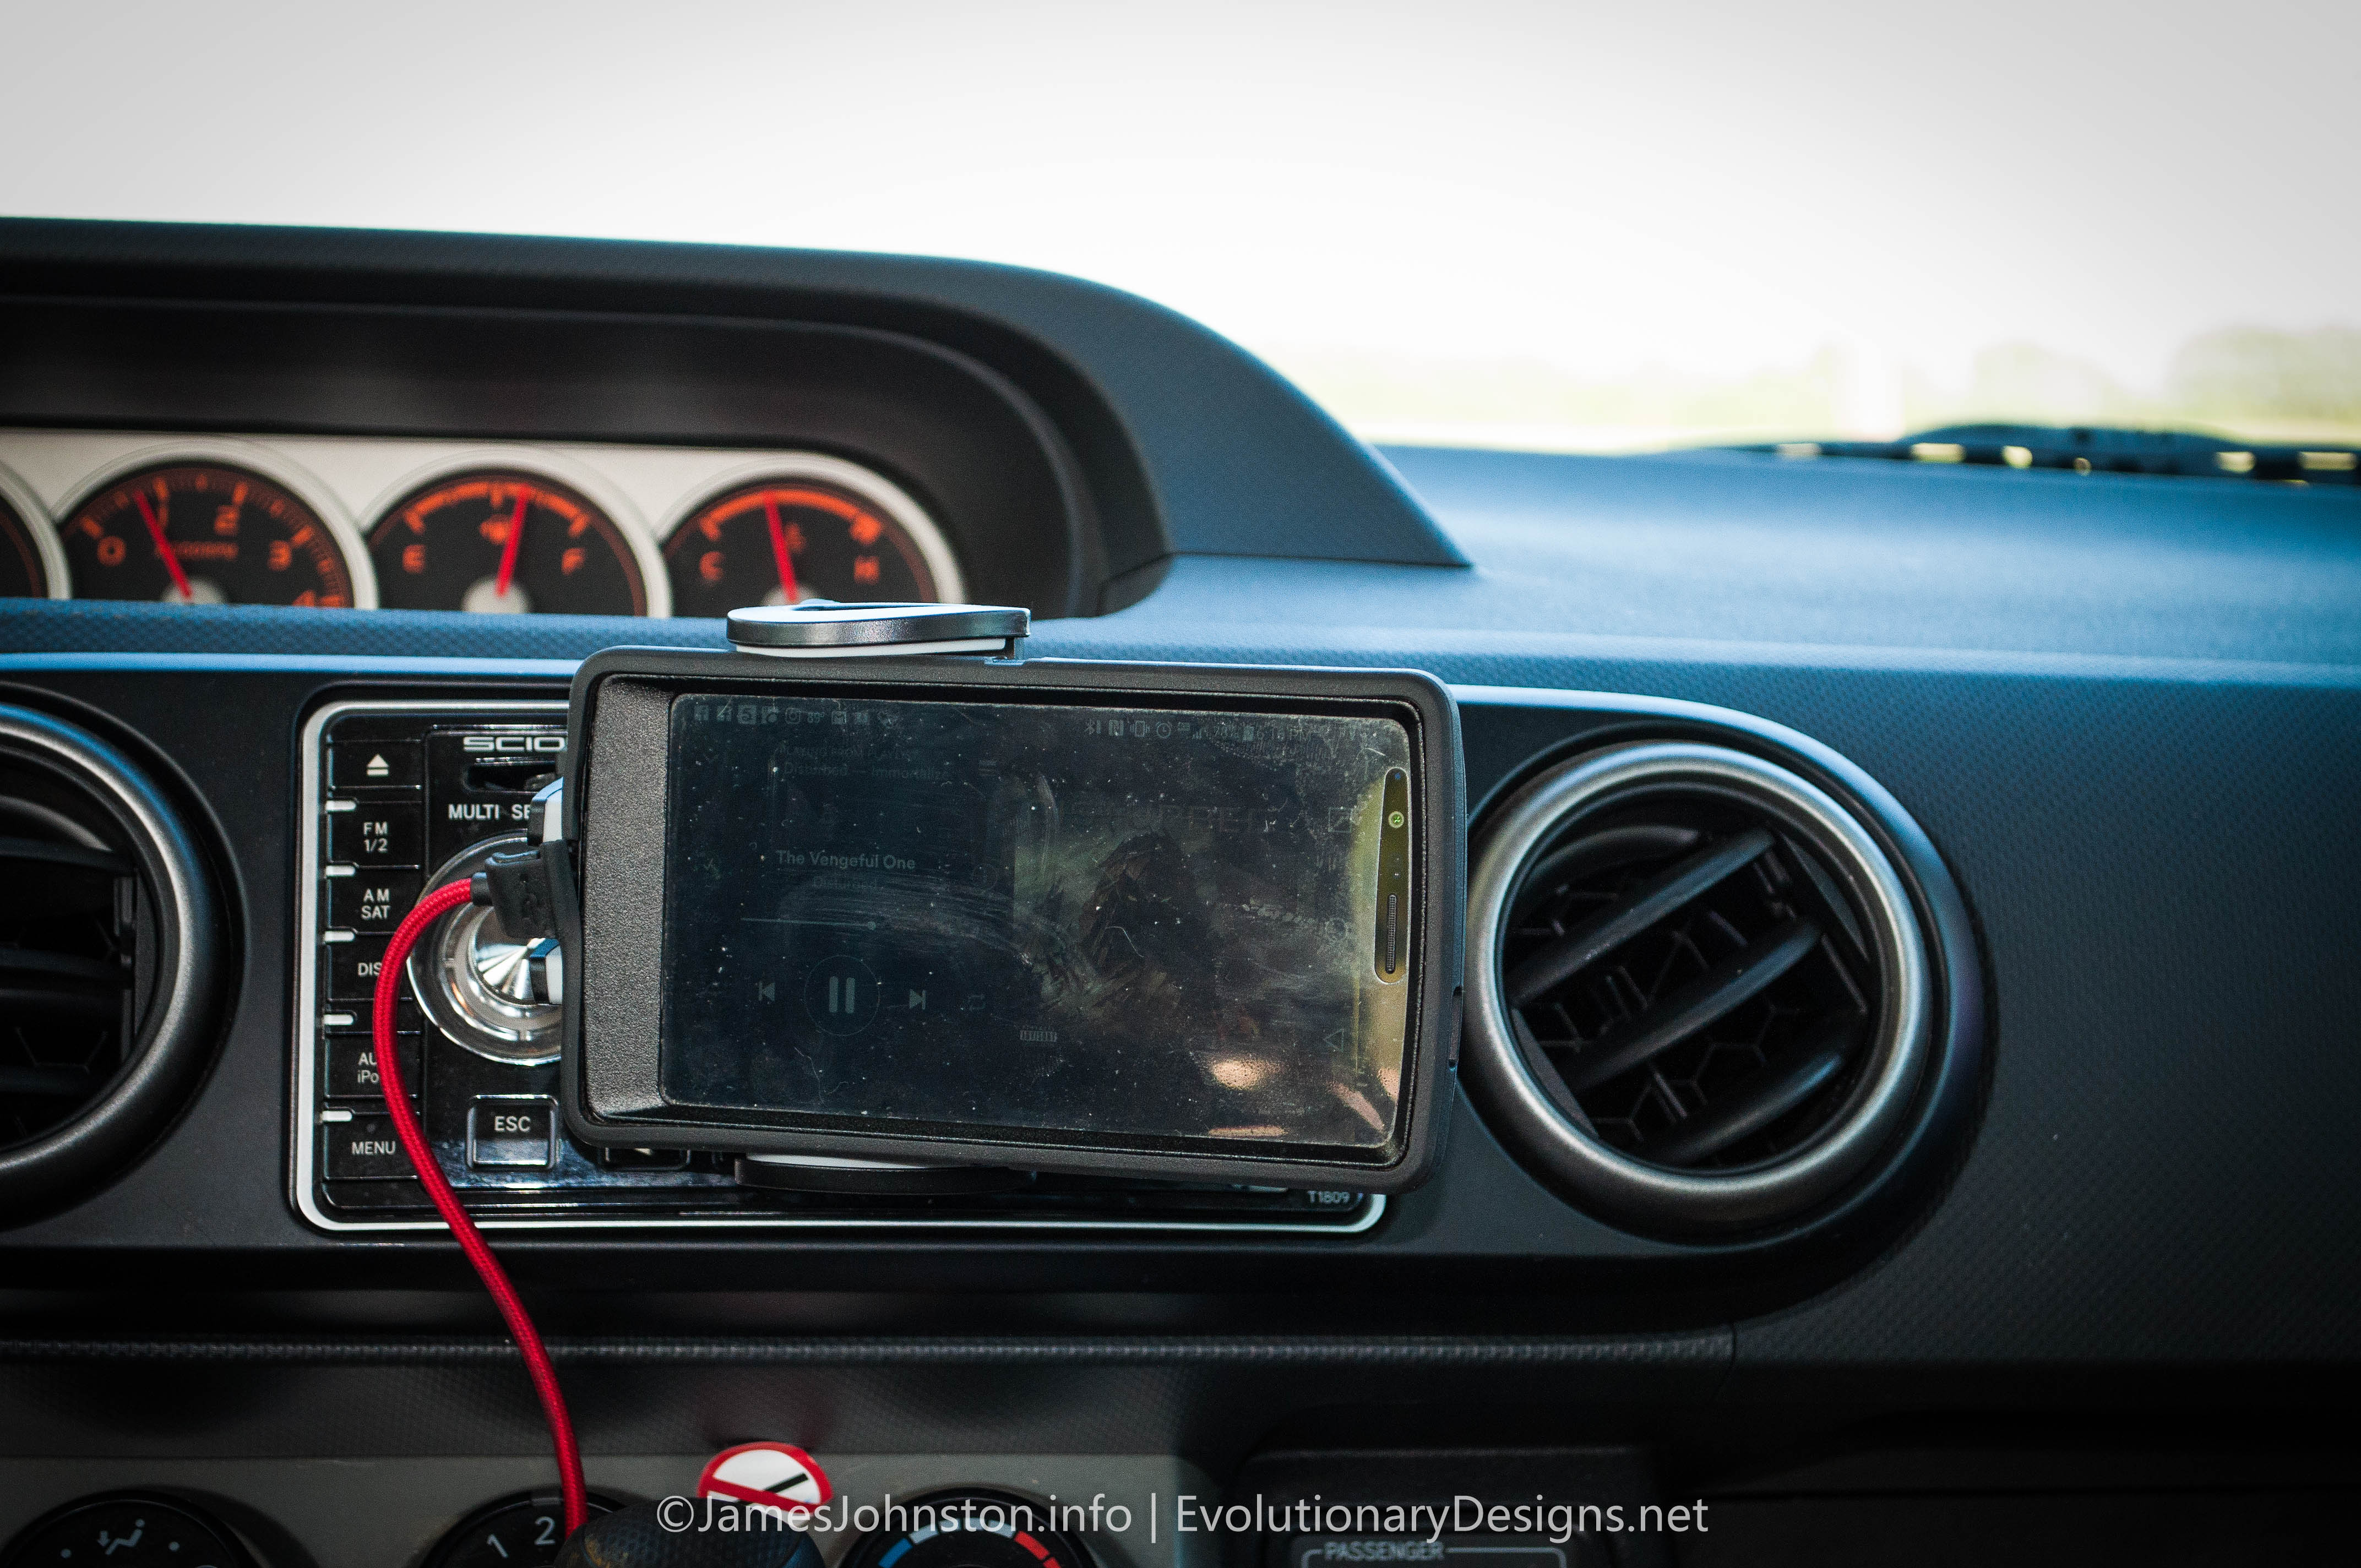 Anker CD Slot Cell Phone Mount - Used in a 2008 Scion XB  and LG G4 with Otterbox Defender Case in Horizontal mode.